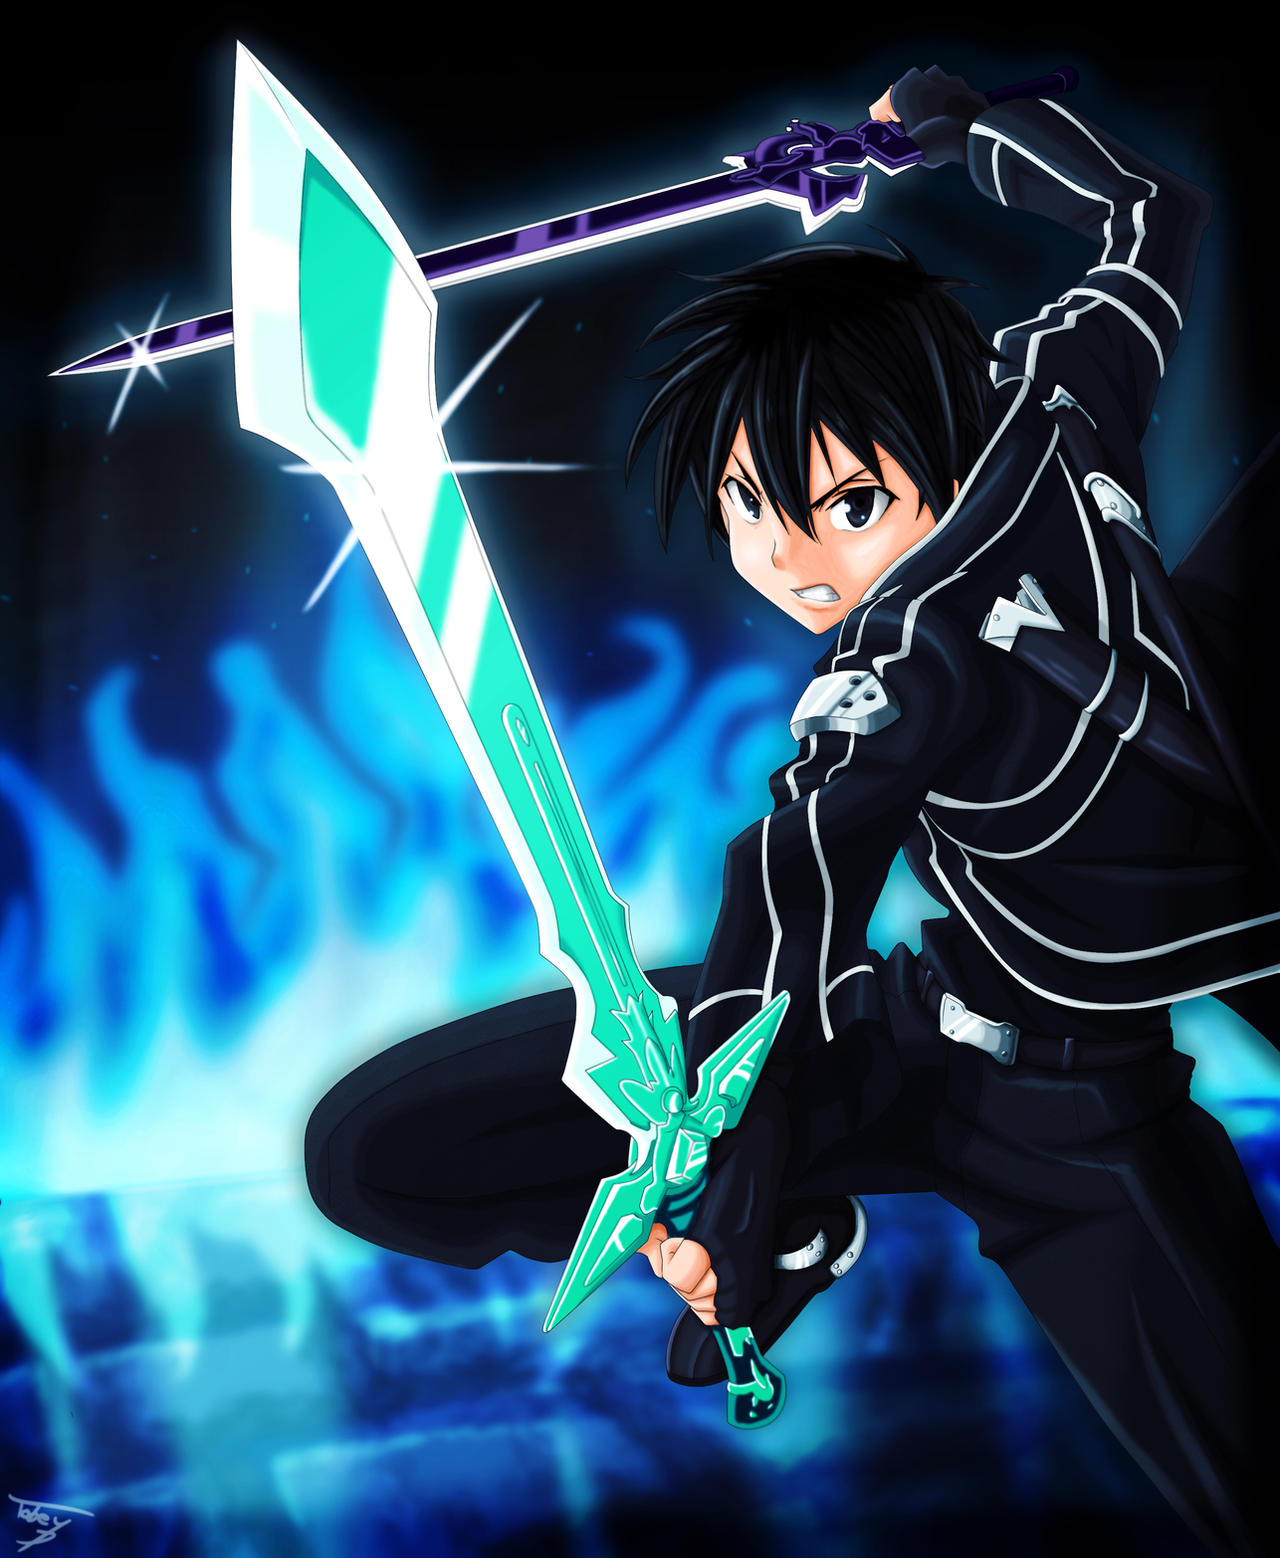 Anime Characters Use Dual Swords : Kirito dual blade by tobeyd on deviantart